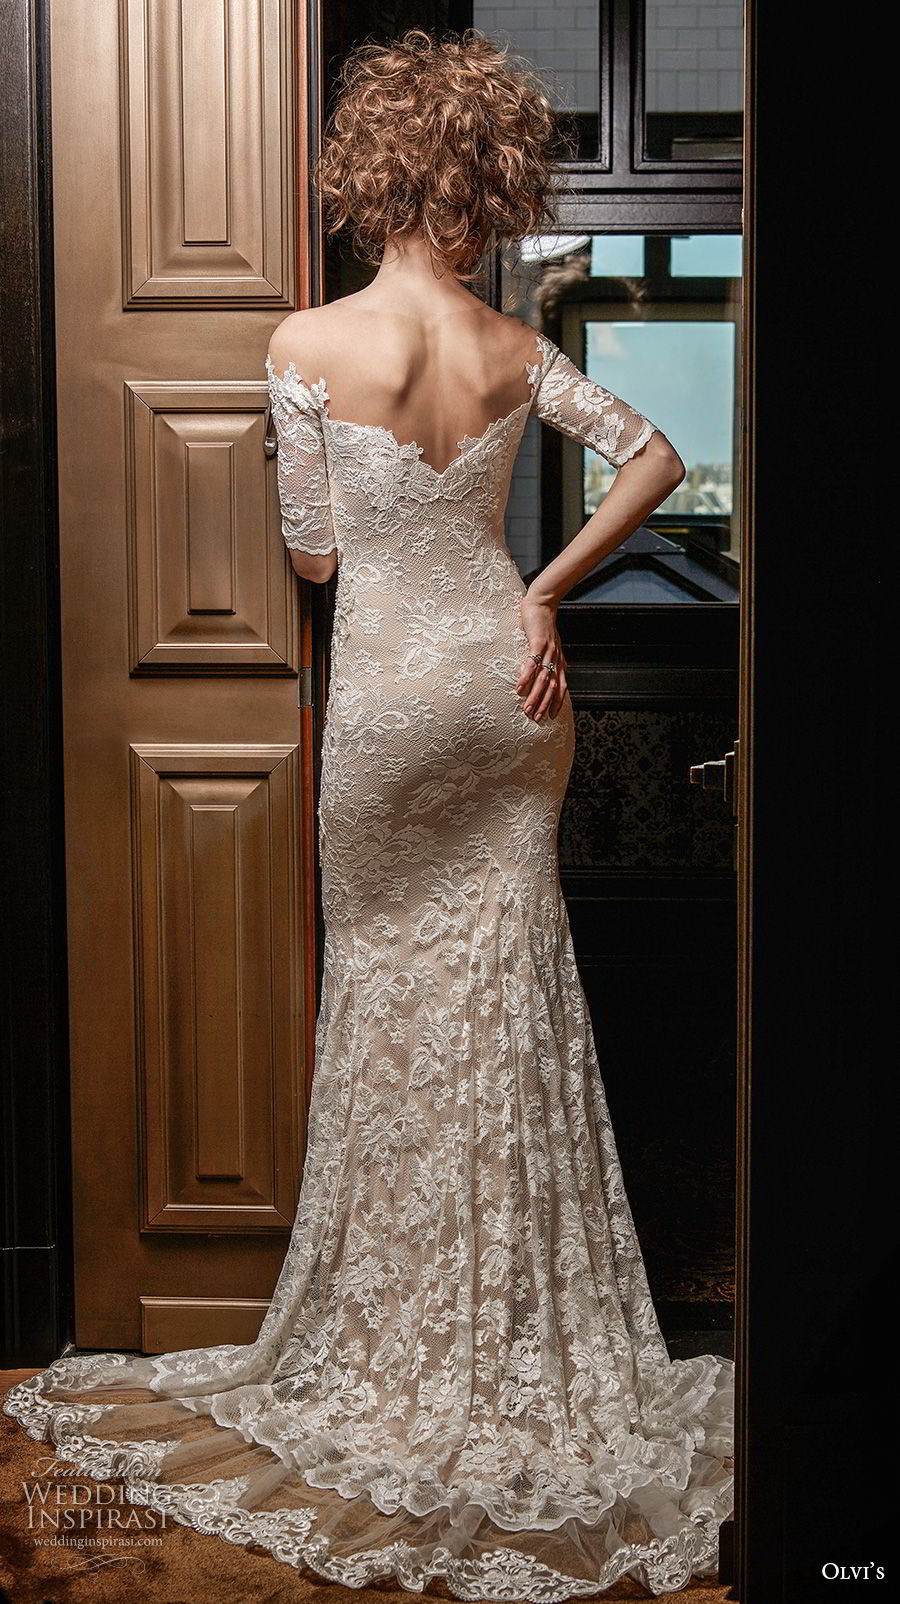 olvi 2019 bridal half sleeves off the shoulder v neck full embellishment vintage elegant fit and flare wedding dress short train (9) bv